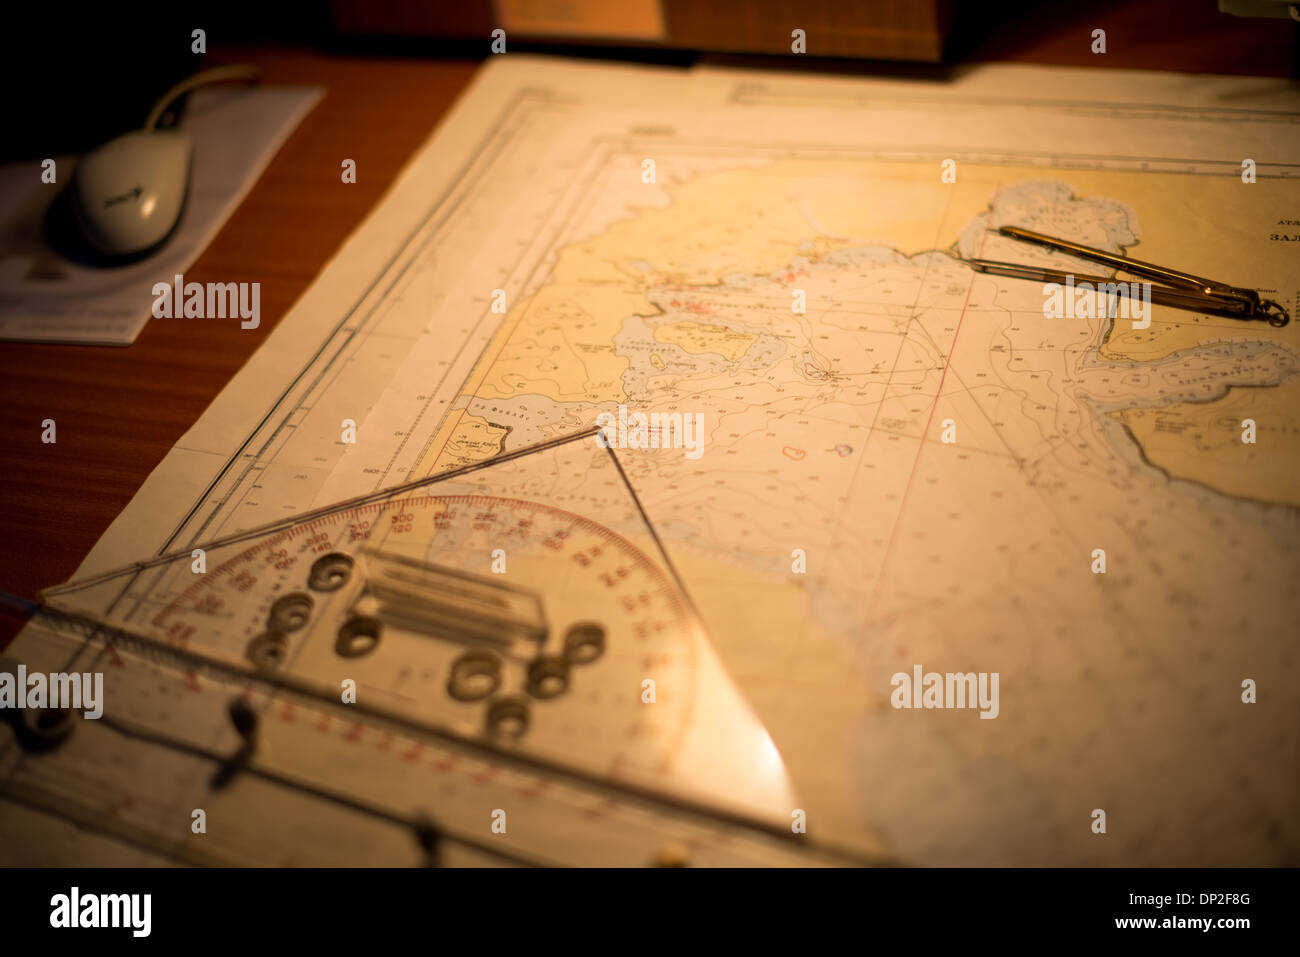 ANTARCTICA - Navigation charts on a map table on the bridge of an Antarctic cruise ship, the Polar Pioneer. - Stock Image